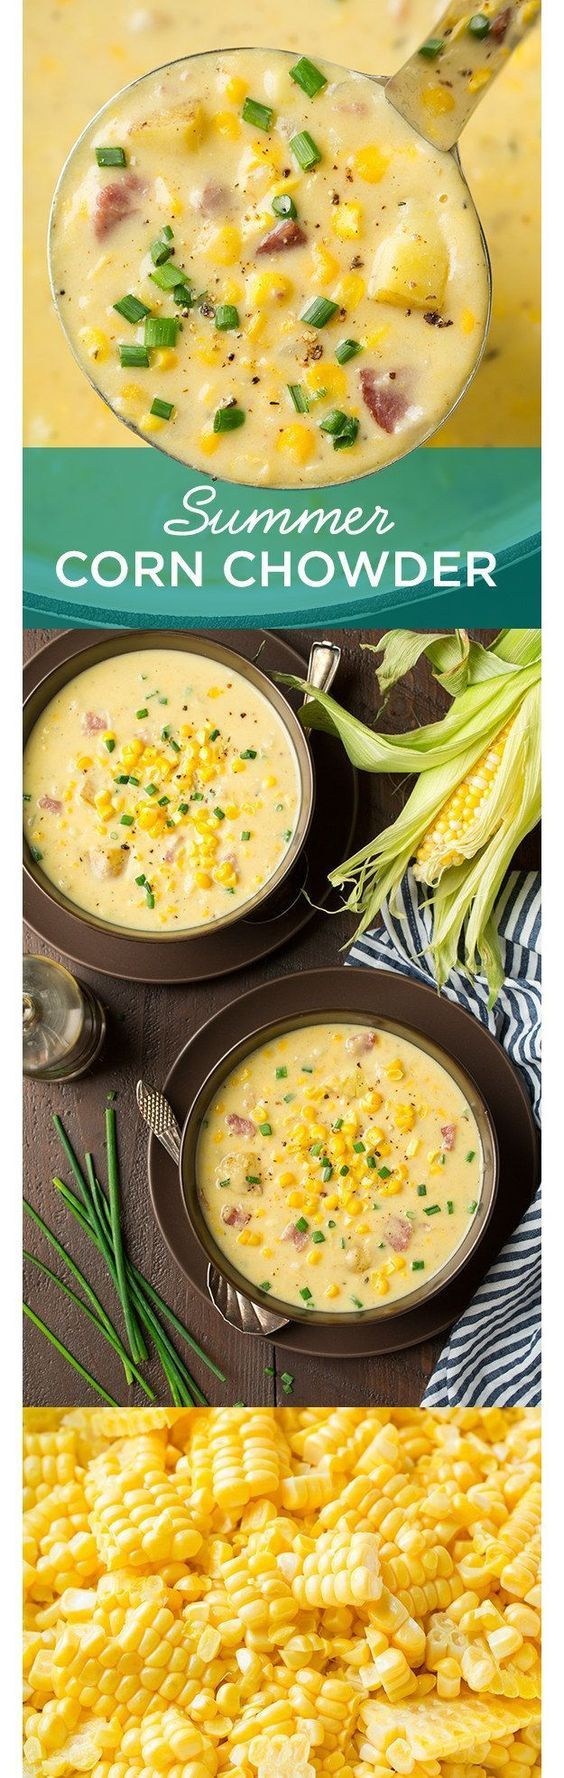 Summer Corn Chowder recipe.